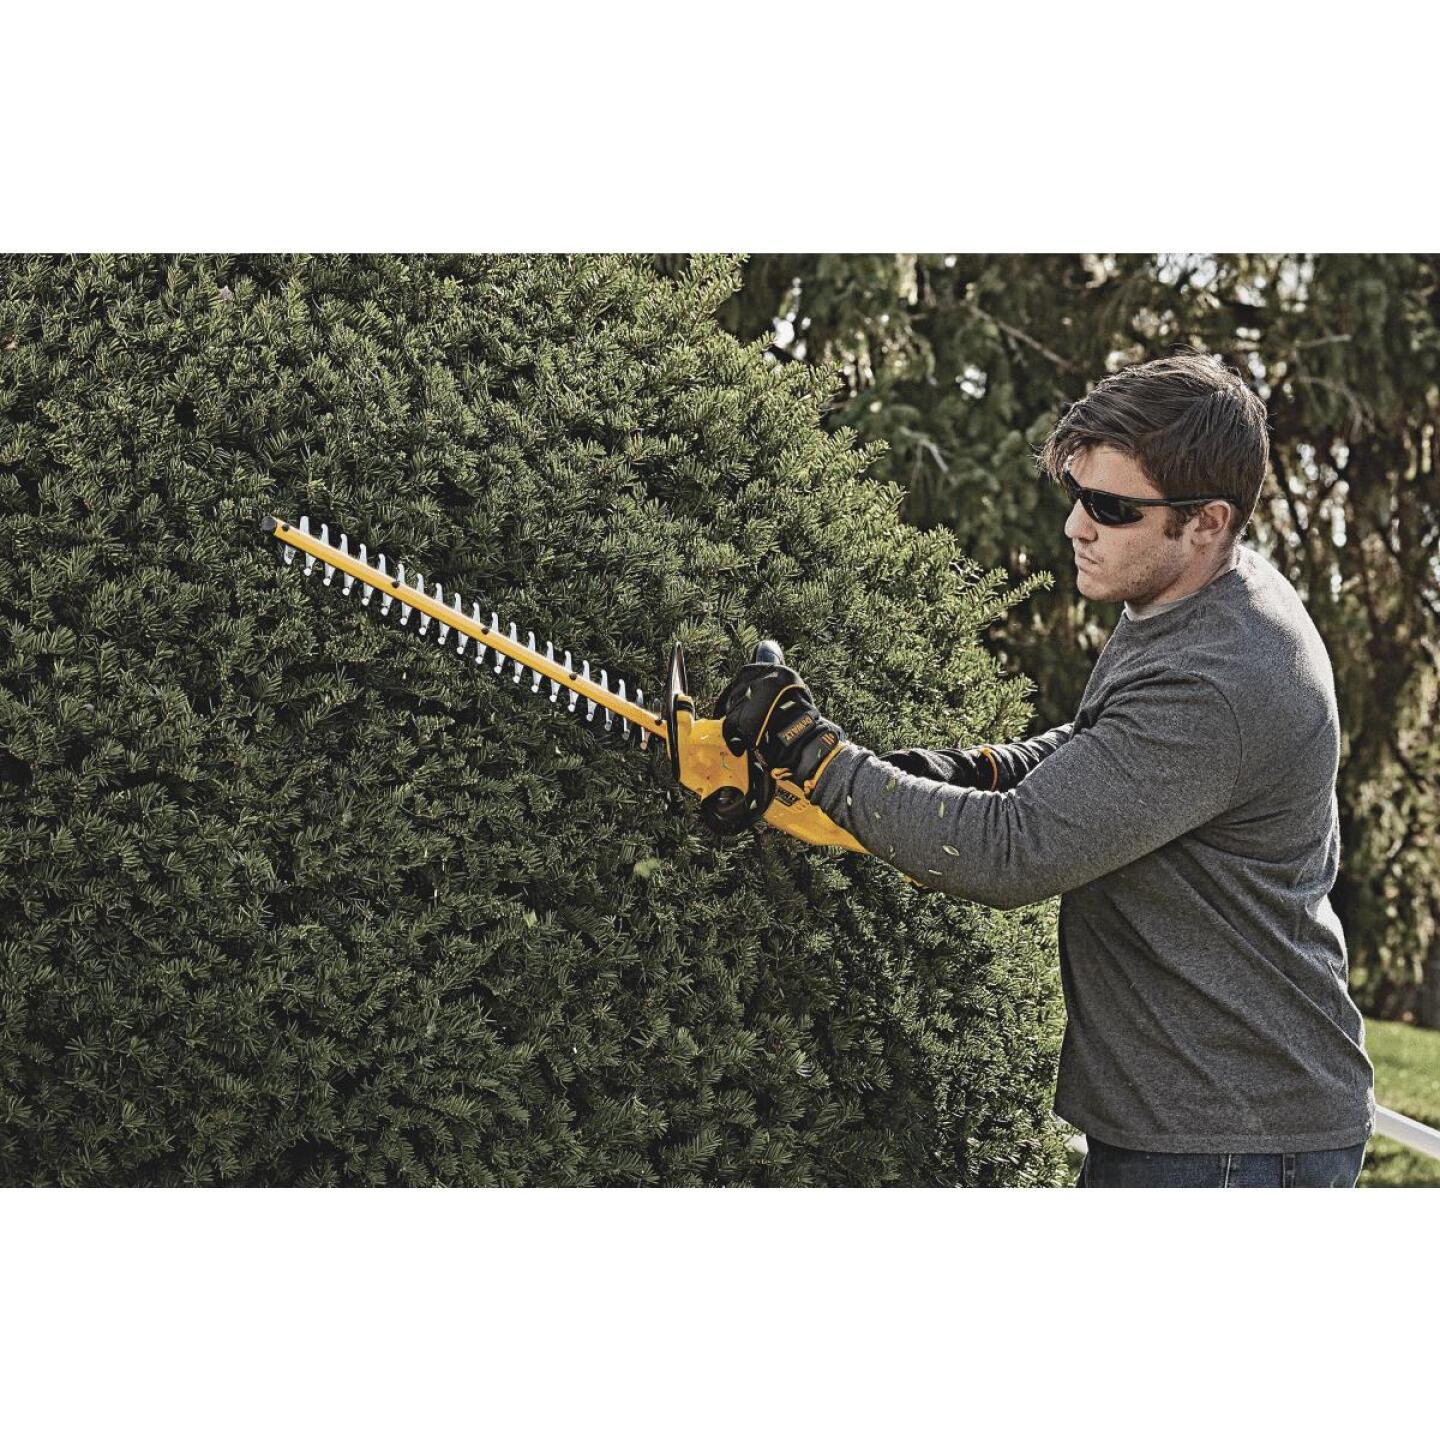 DeWalt 22 In. 20V Lithium Ion Cordless Hedge Trimmer Image 4